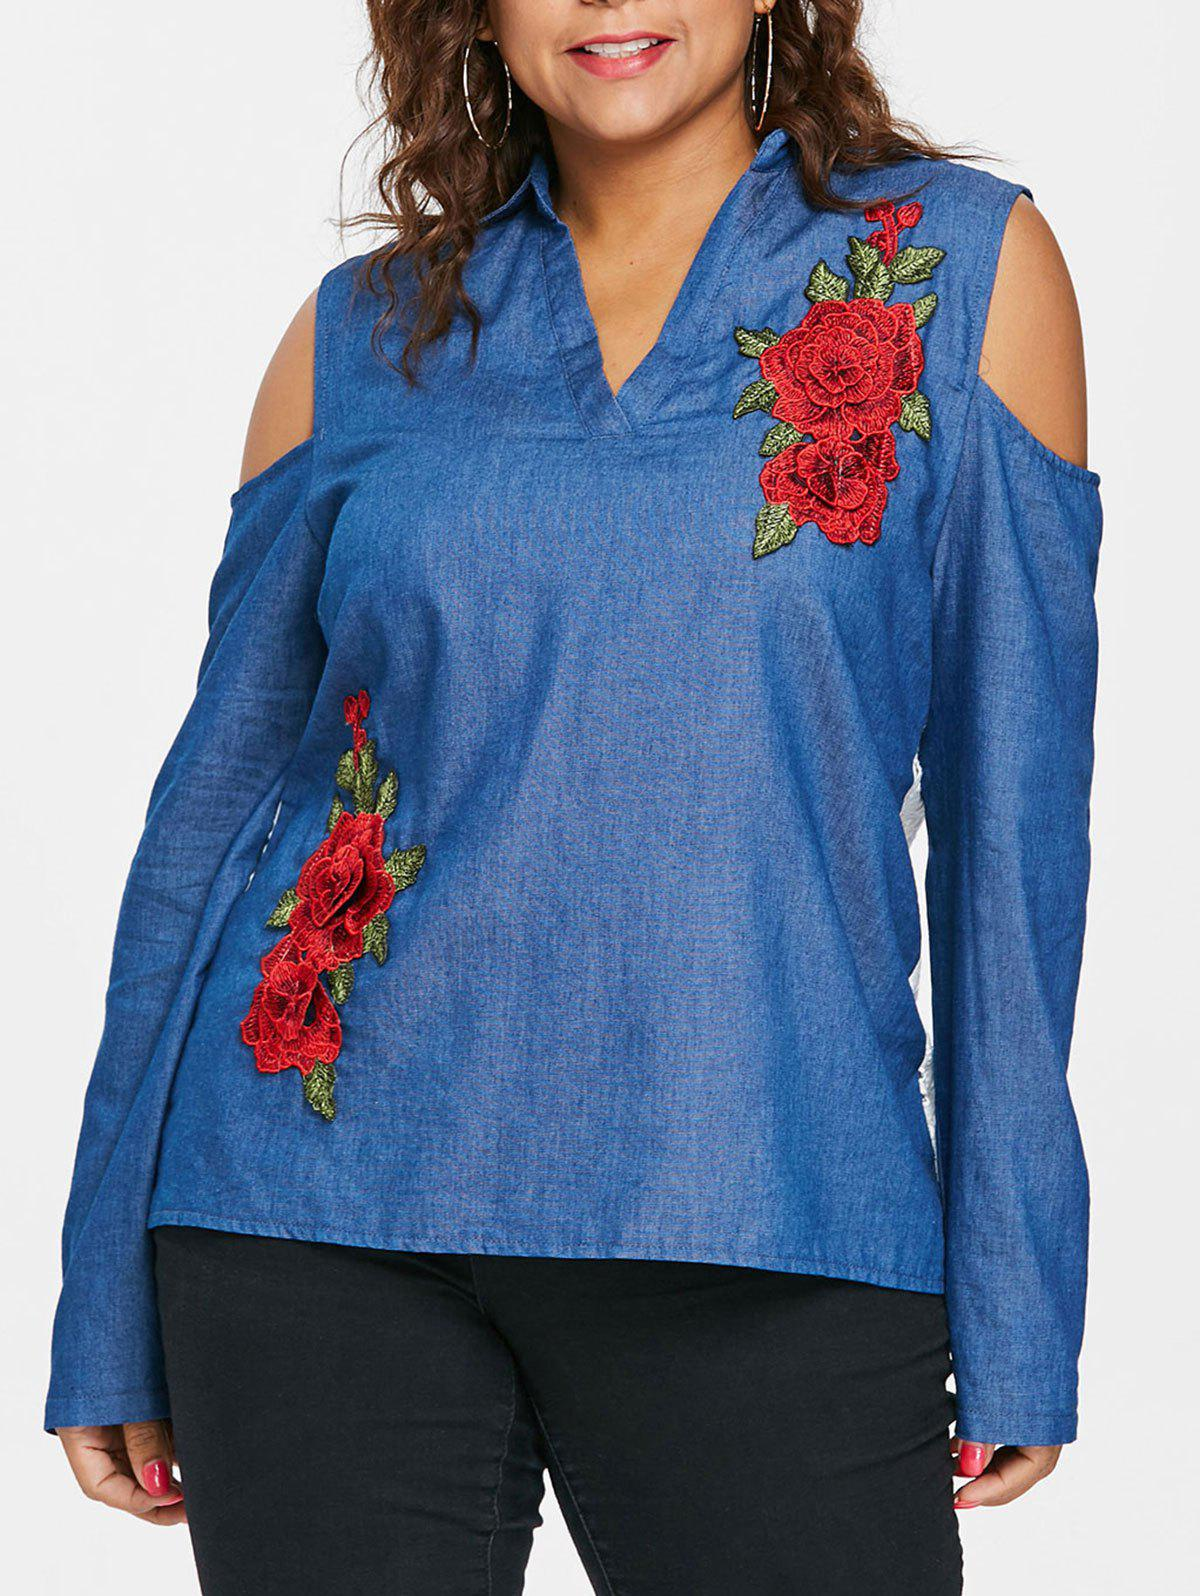 Plus Size Back Buttoned Eyelet Embroidery Top - BLUE L